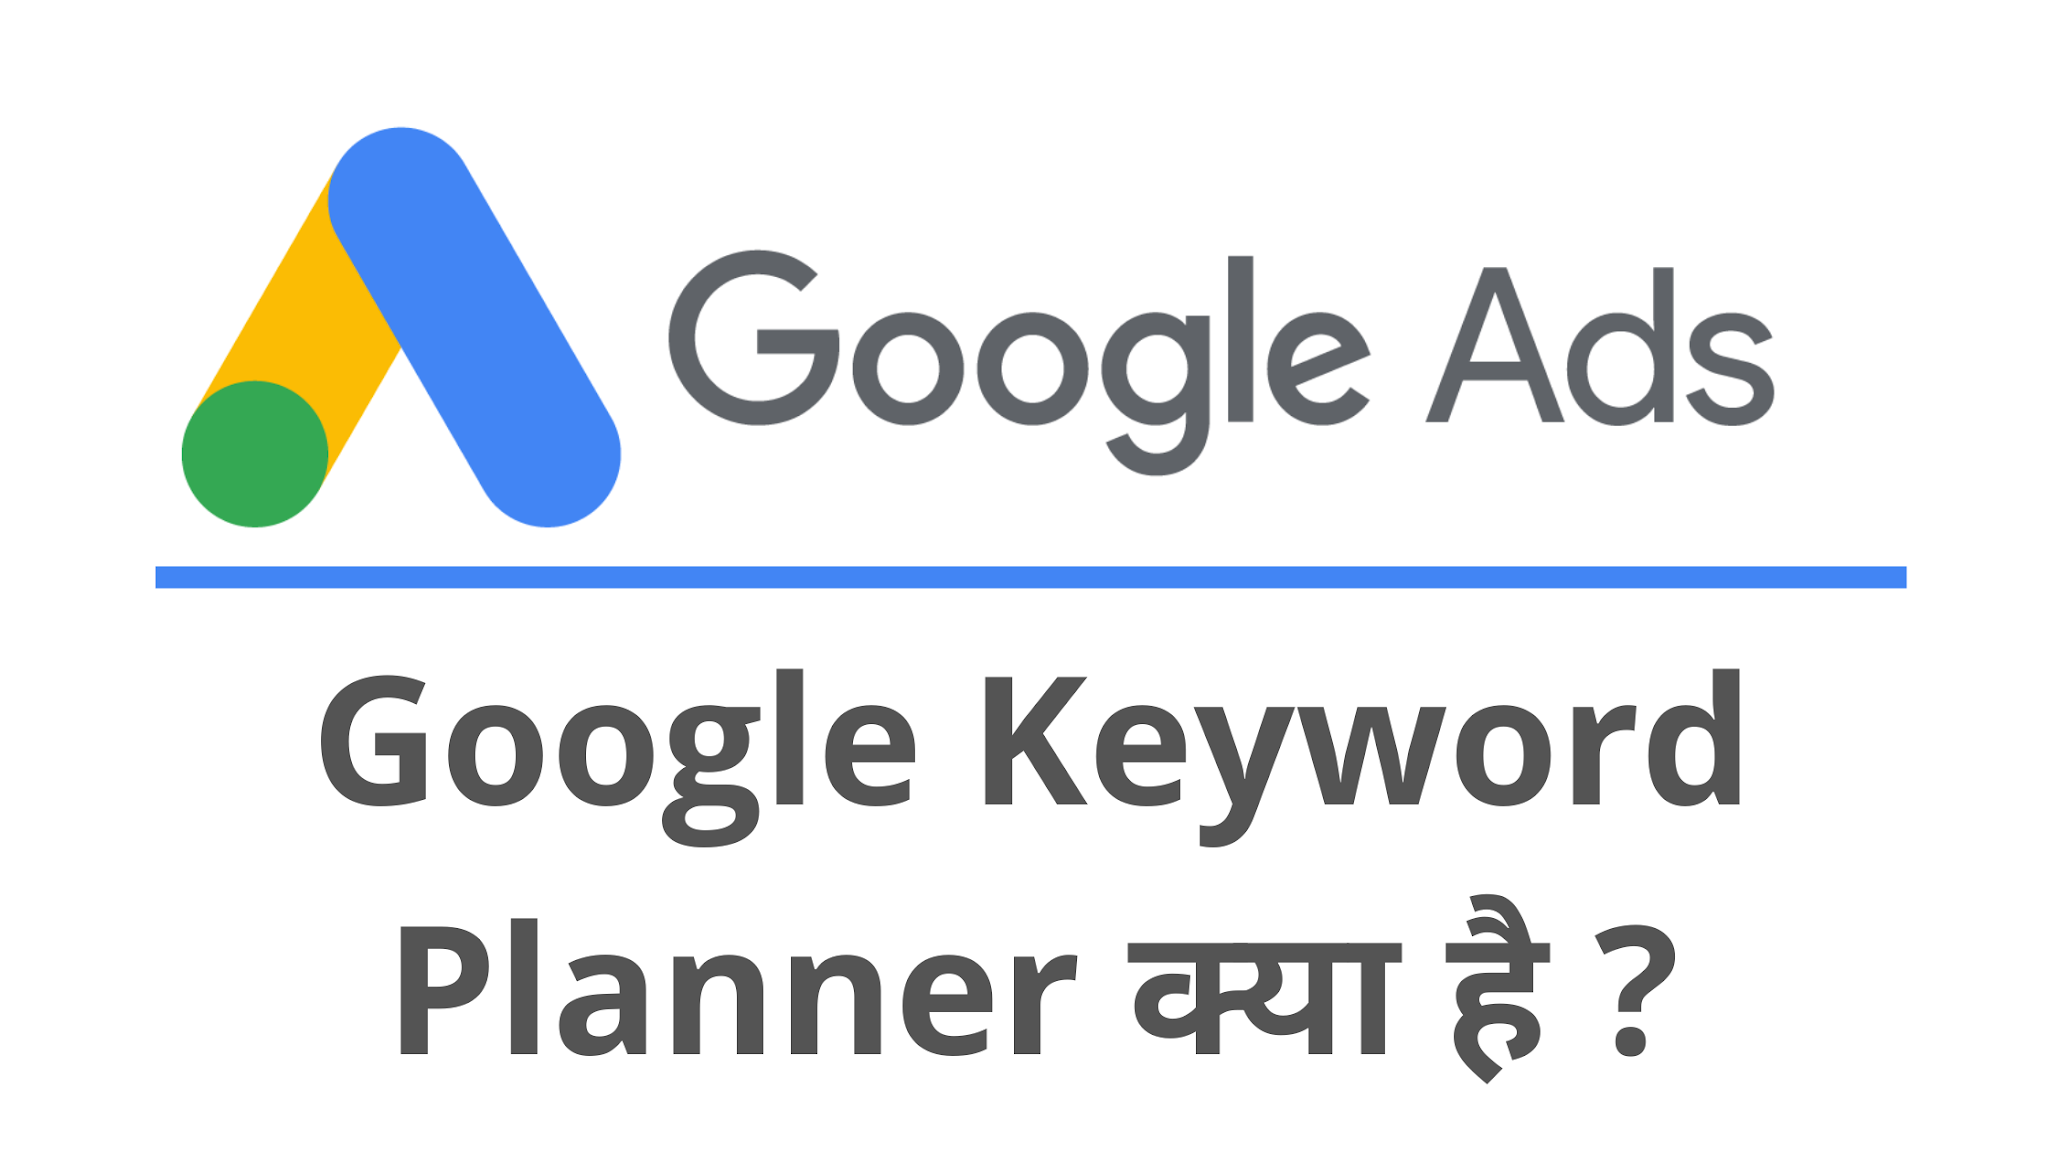 What is Google Keyword Planner